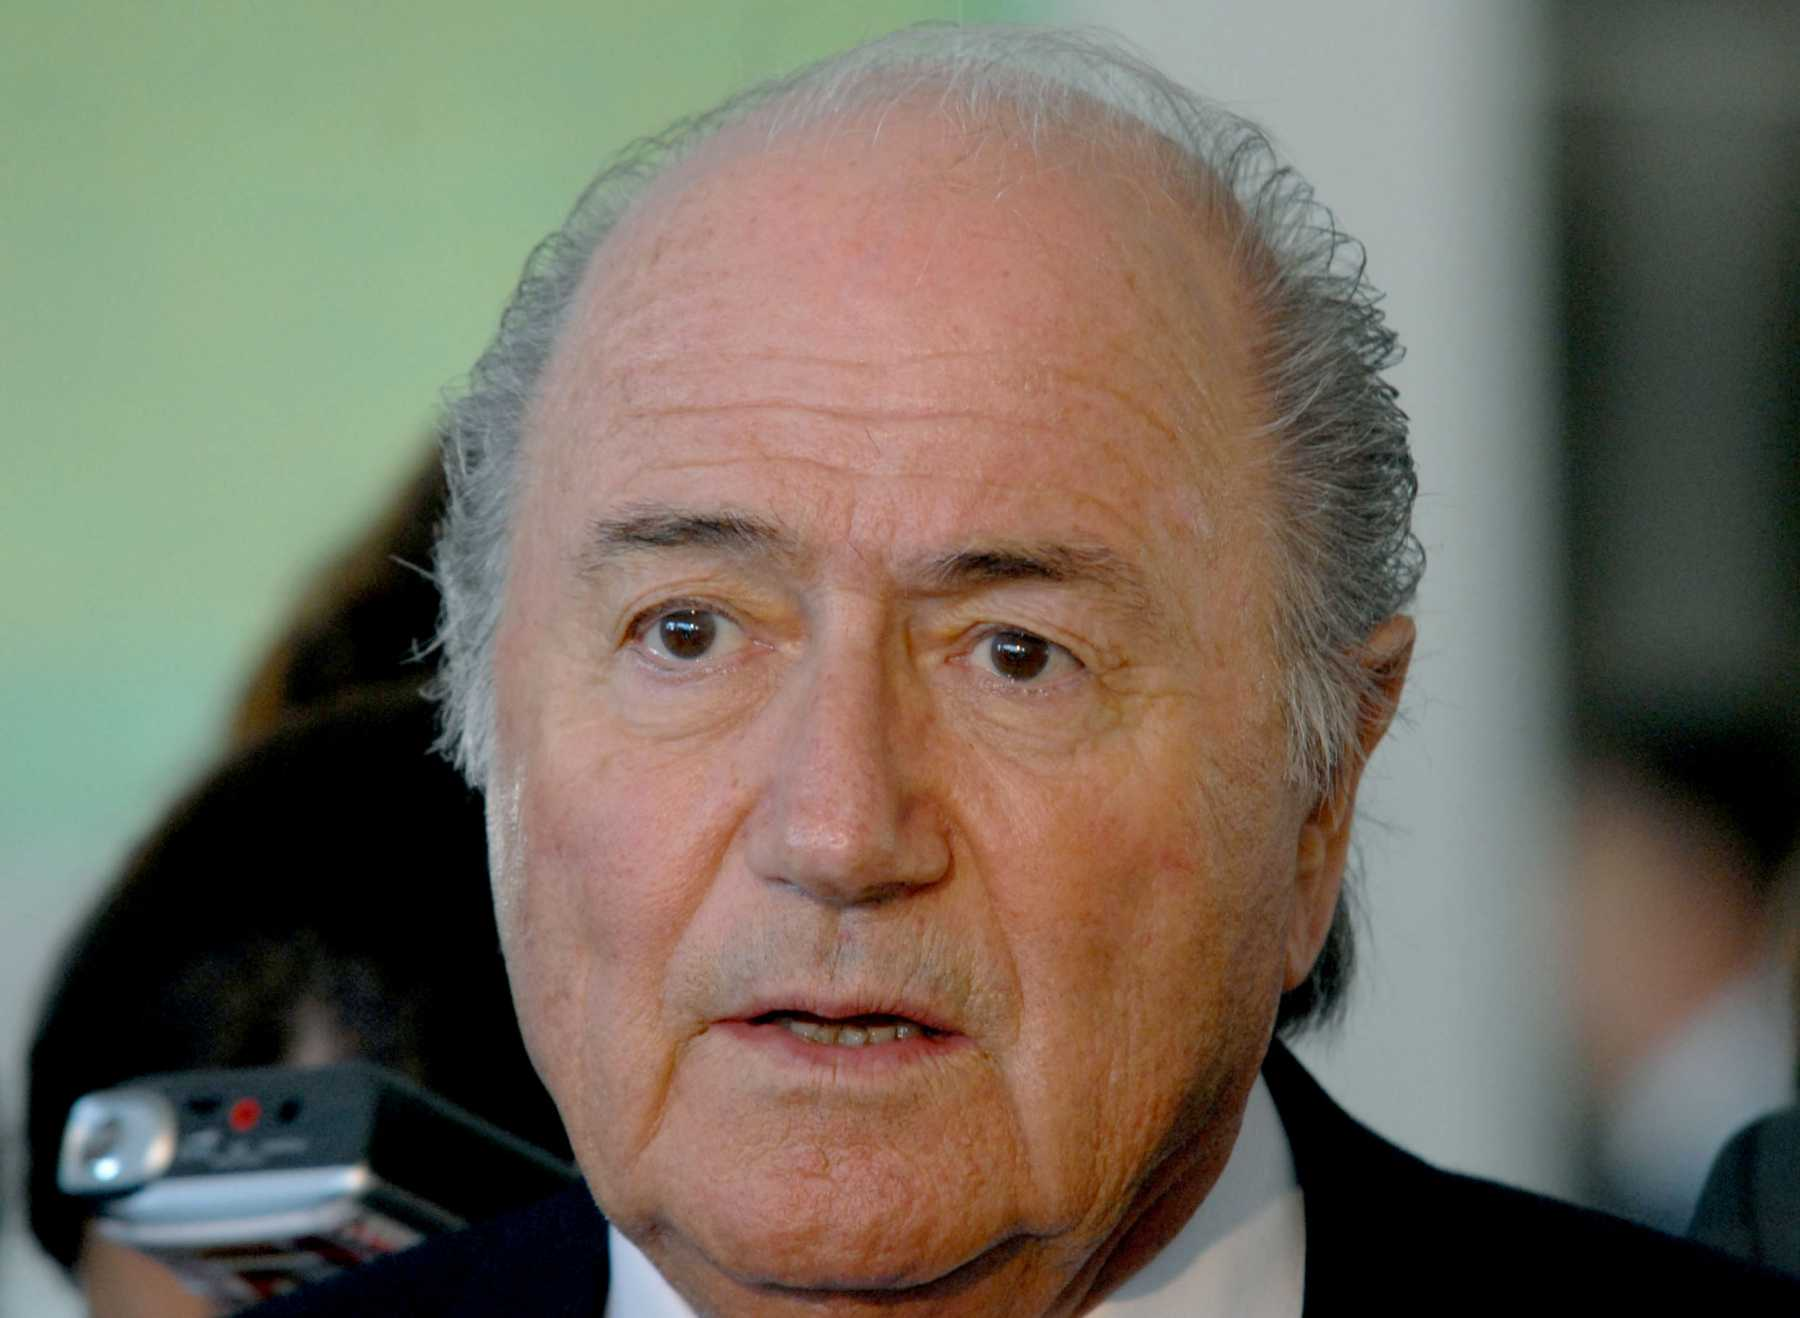 FIFA President Sepp Blatter Says Holding The World Cup In Qatar Is A 'Mistake'